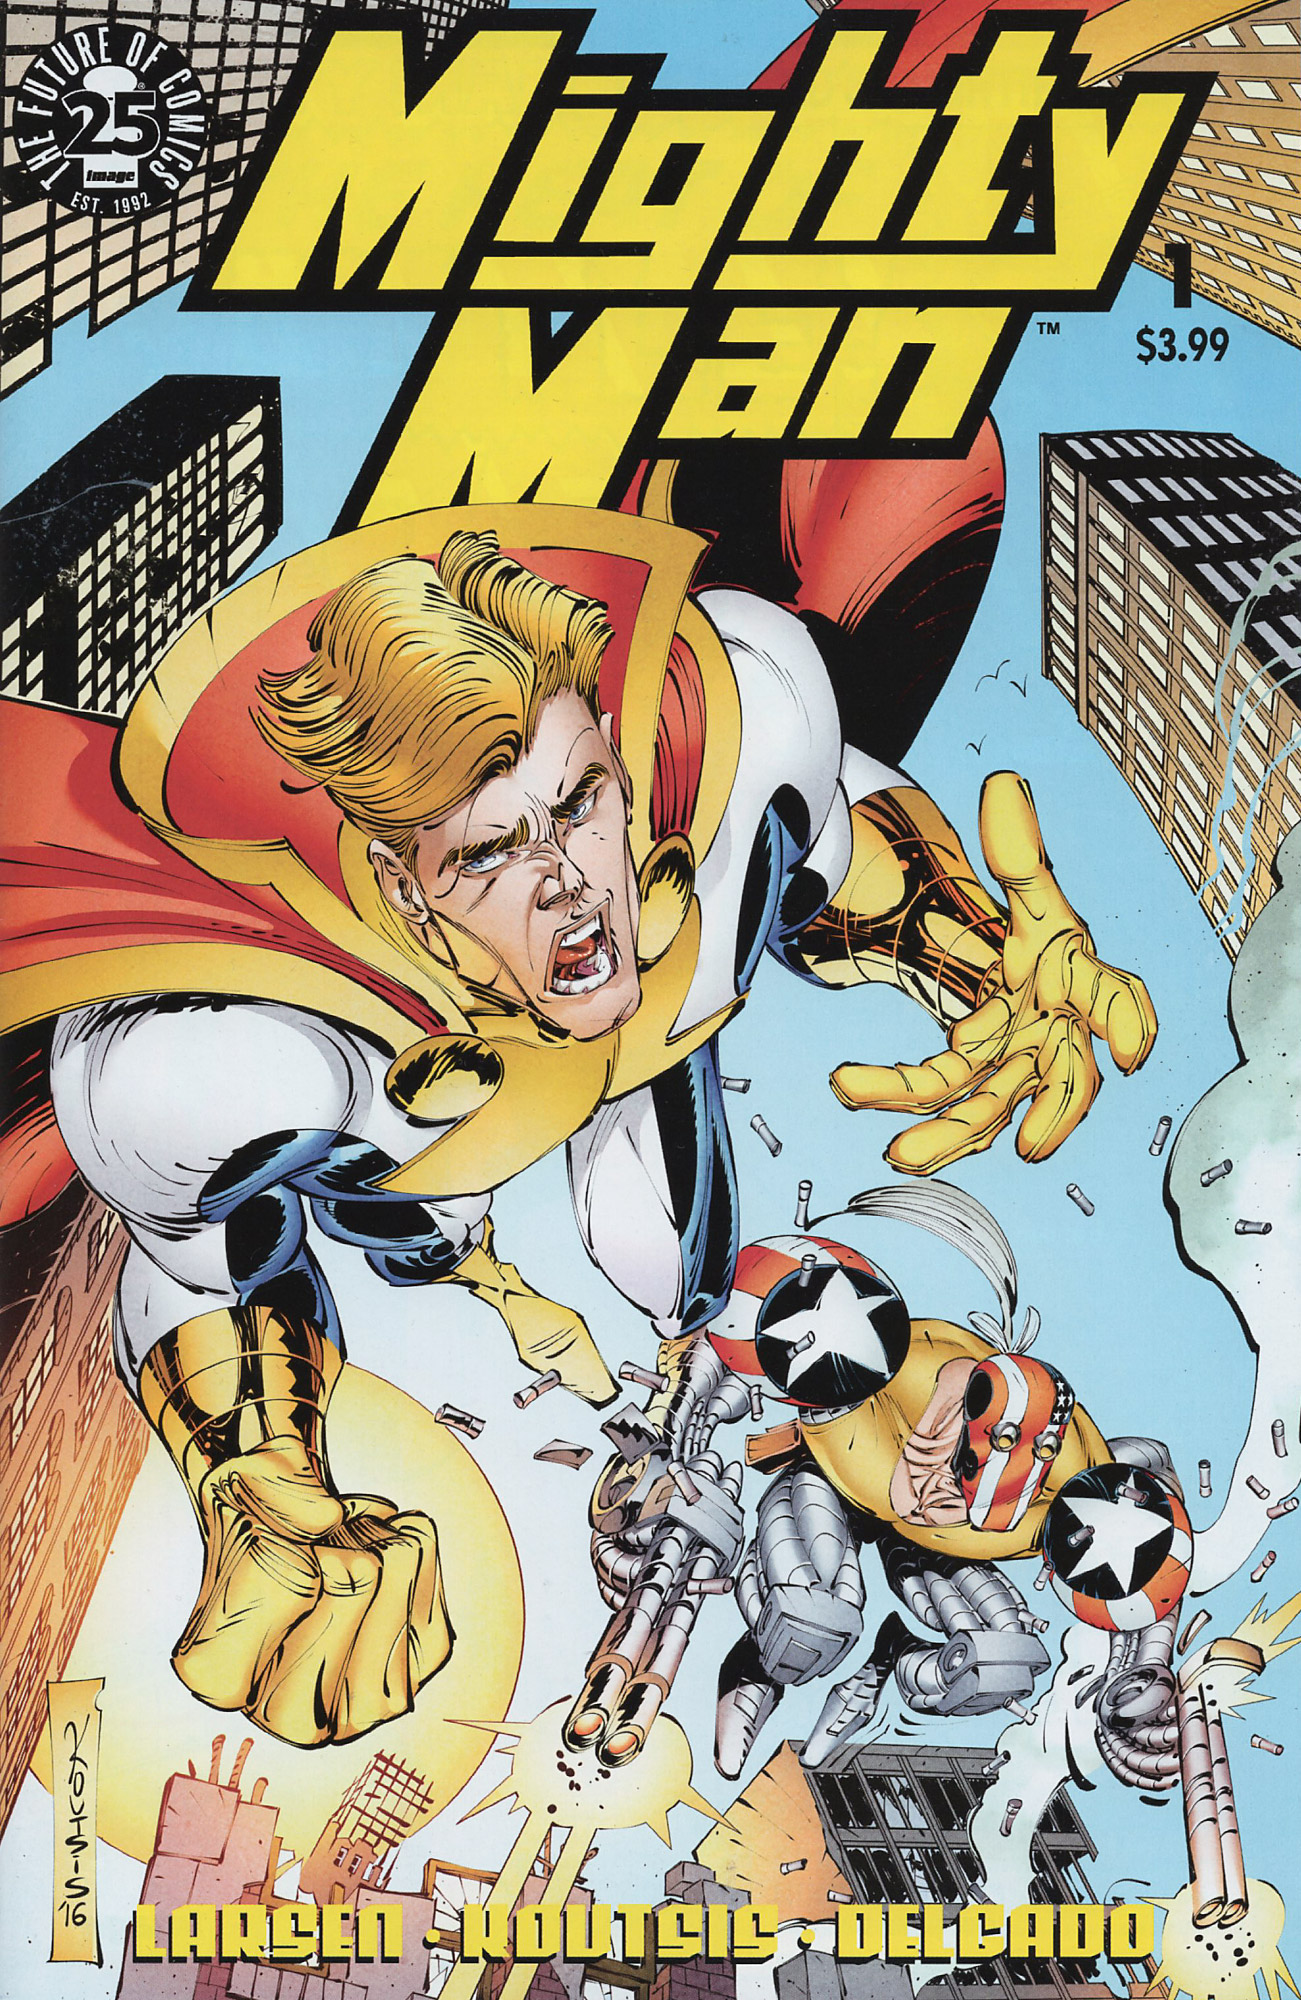 Cover Mighty Man Vol.2 #01